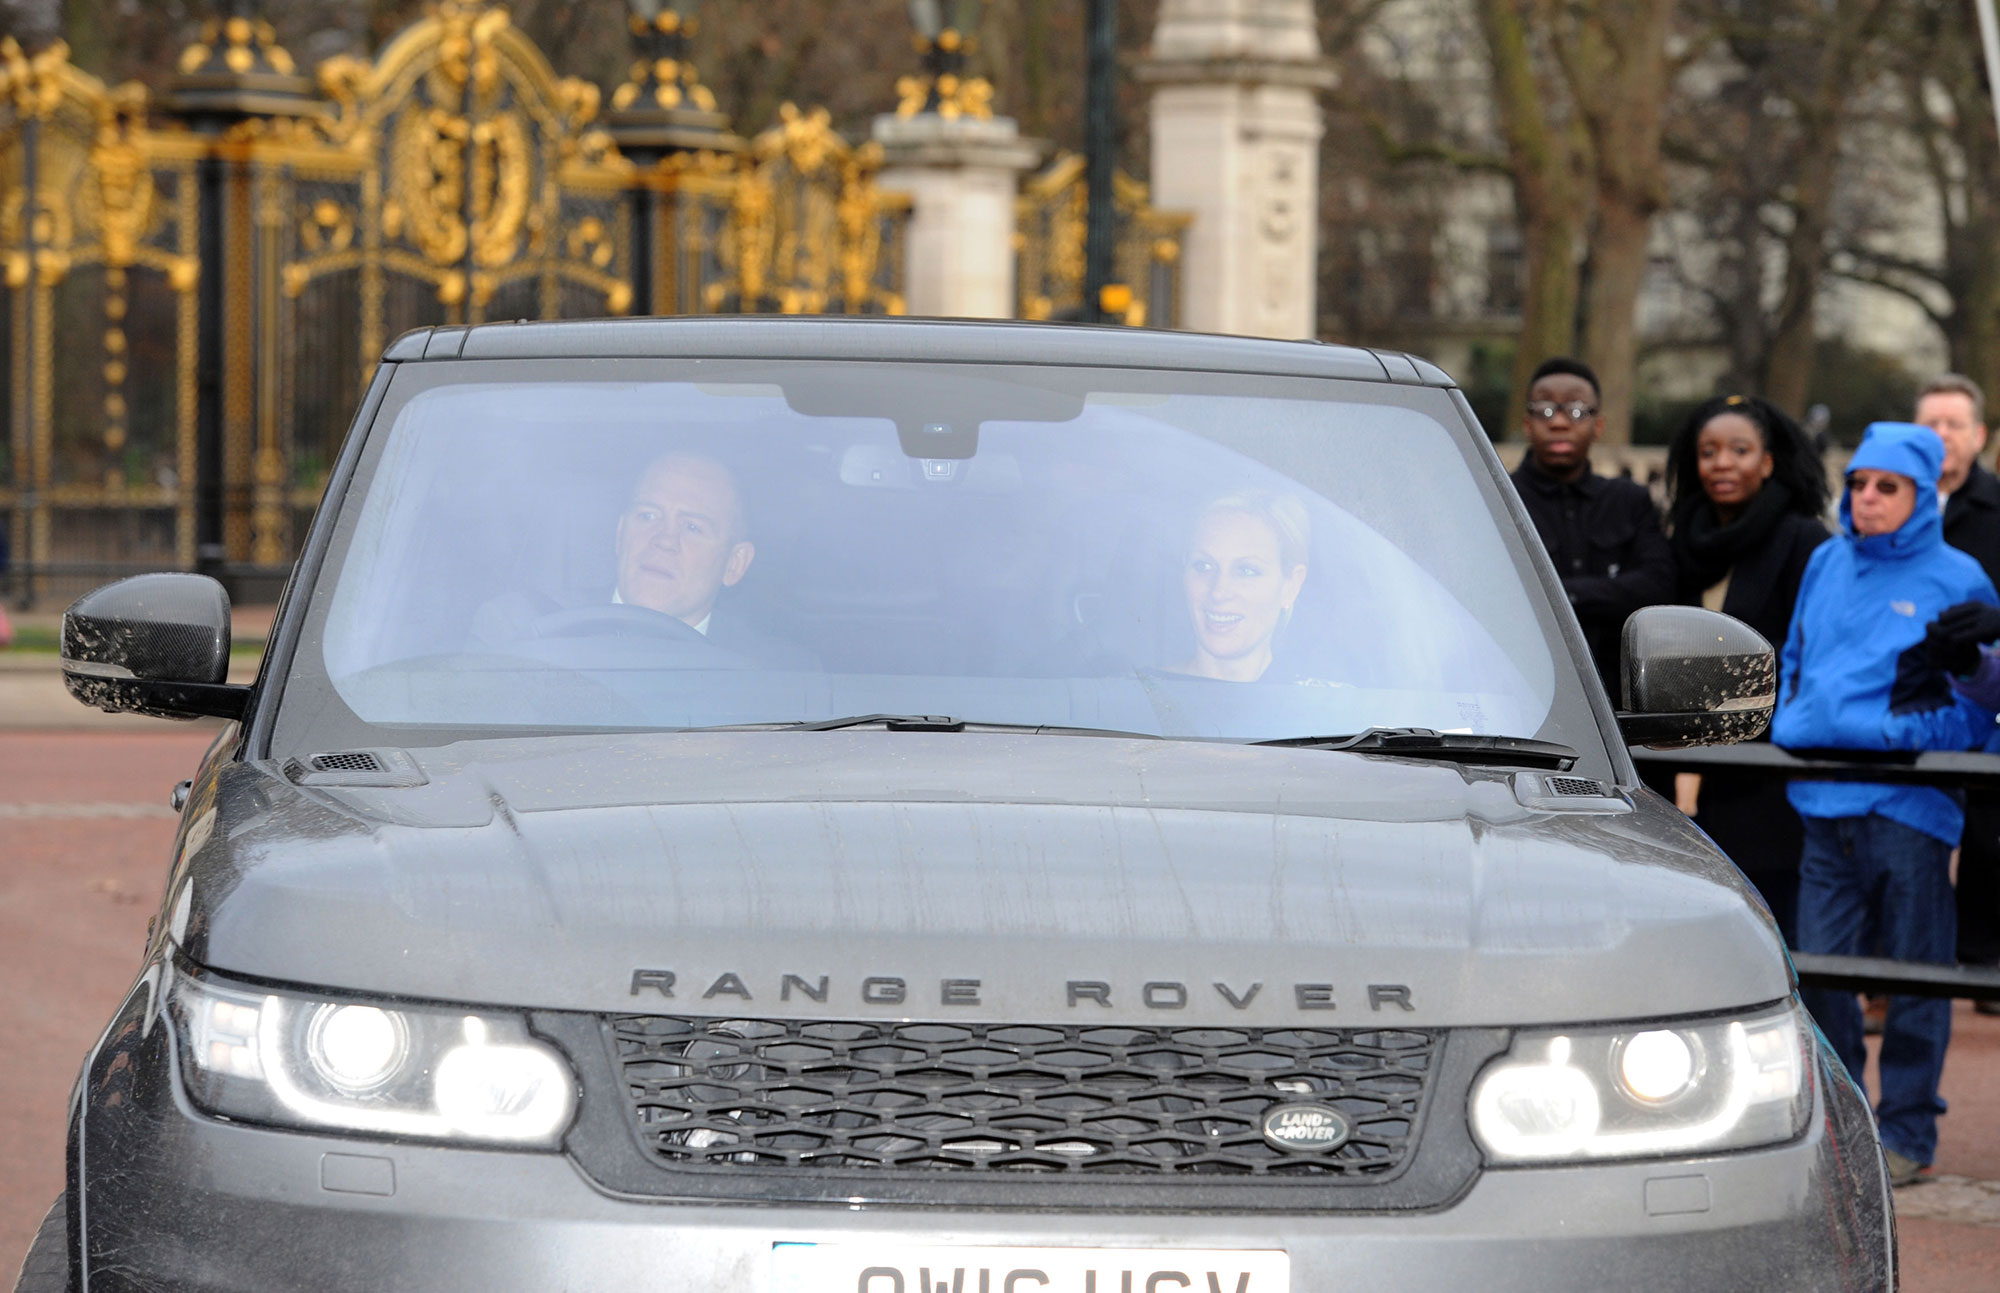 Zara and Mike Tindall arriving for the Queen's Christmas lunch at Buckingham Palace, London. (Photo by Nick Ansell/PA Images via Getty Images)